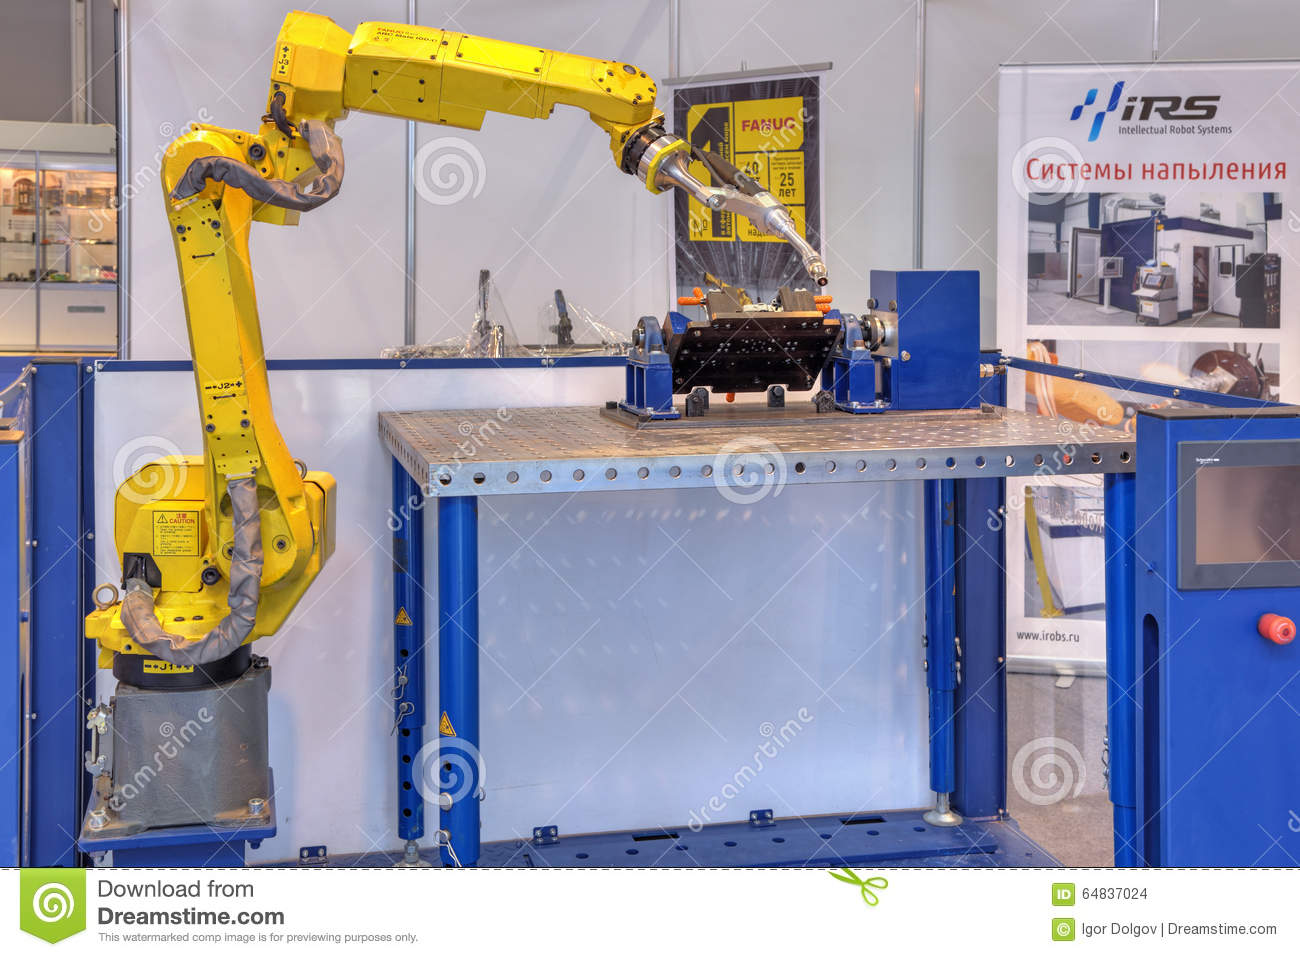 Bug-O Systems Powerful Automation Solutions For Welding And Cutting